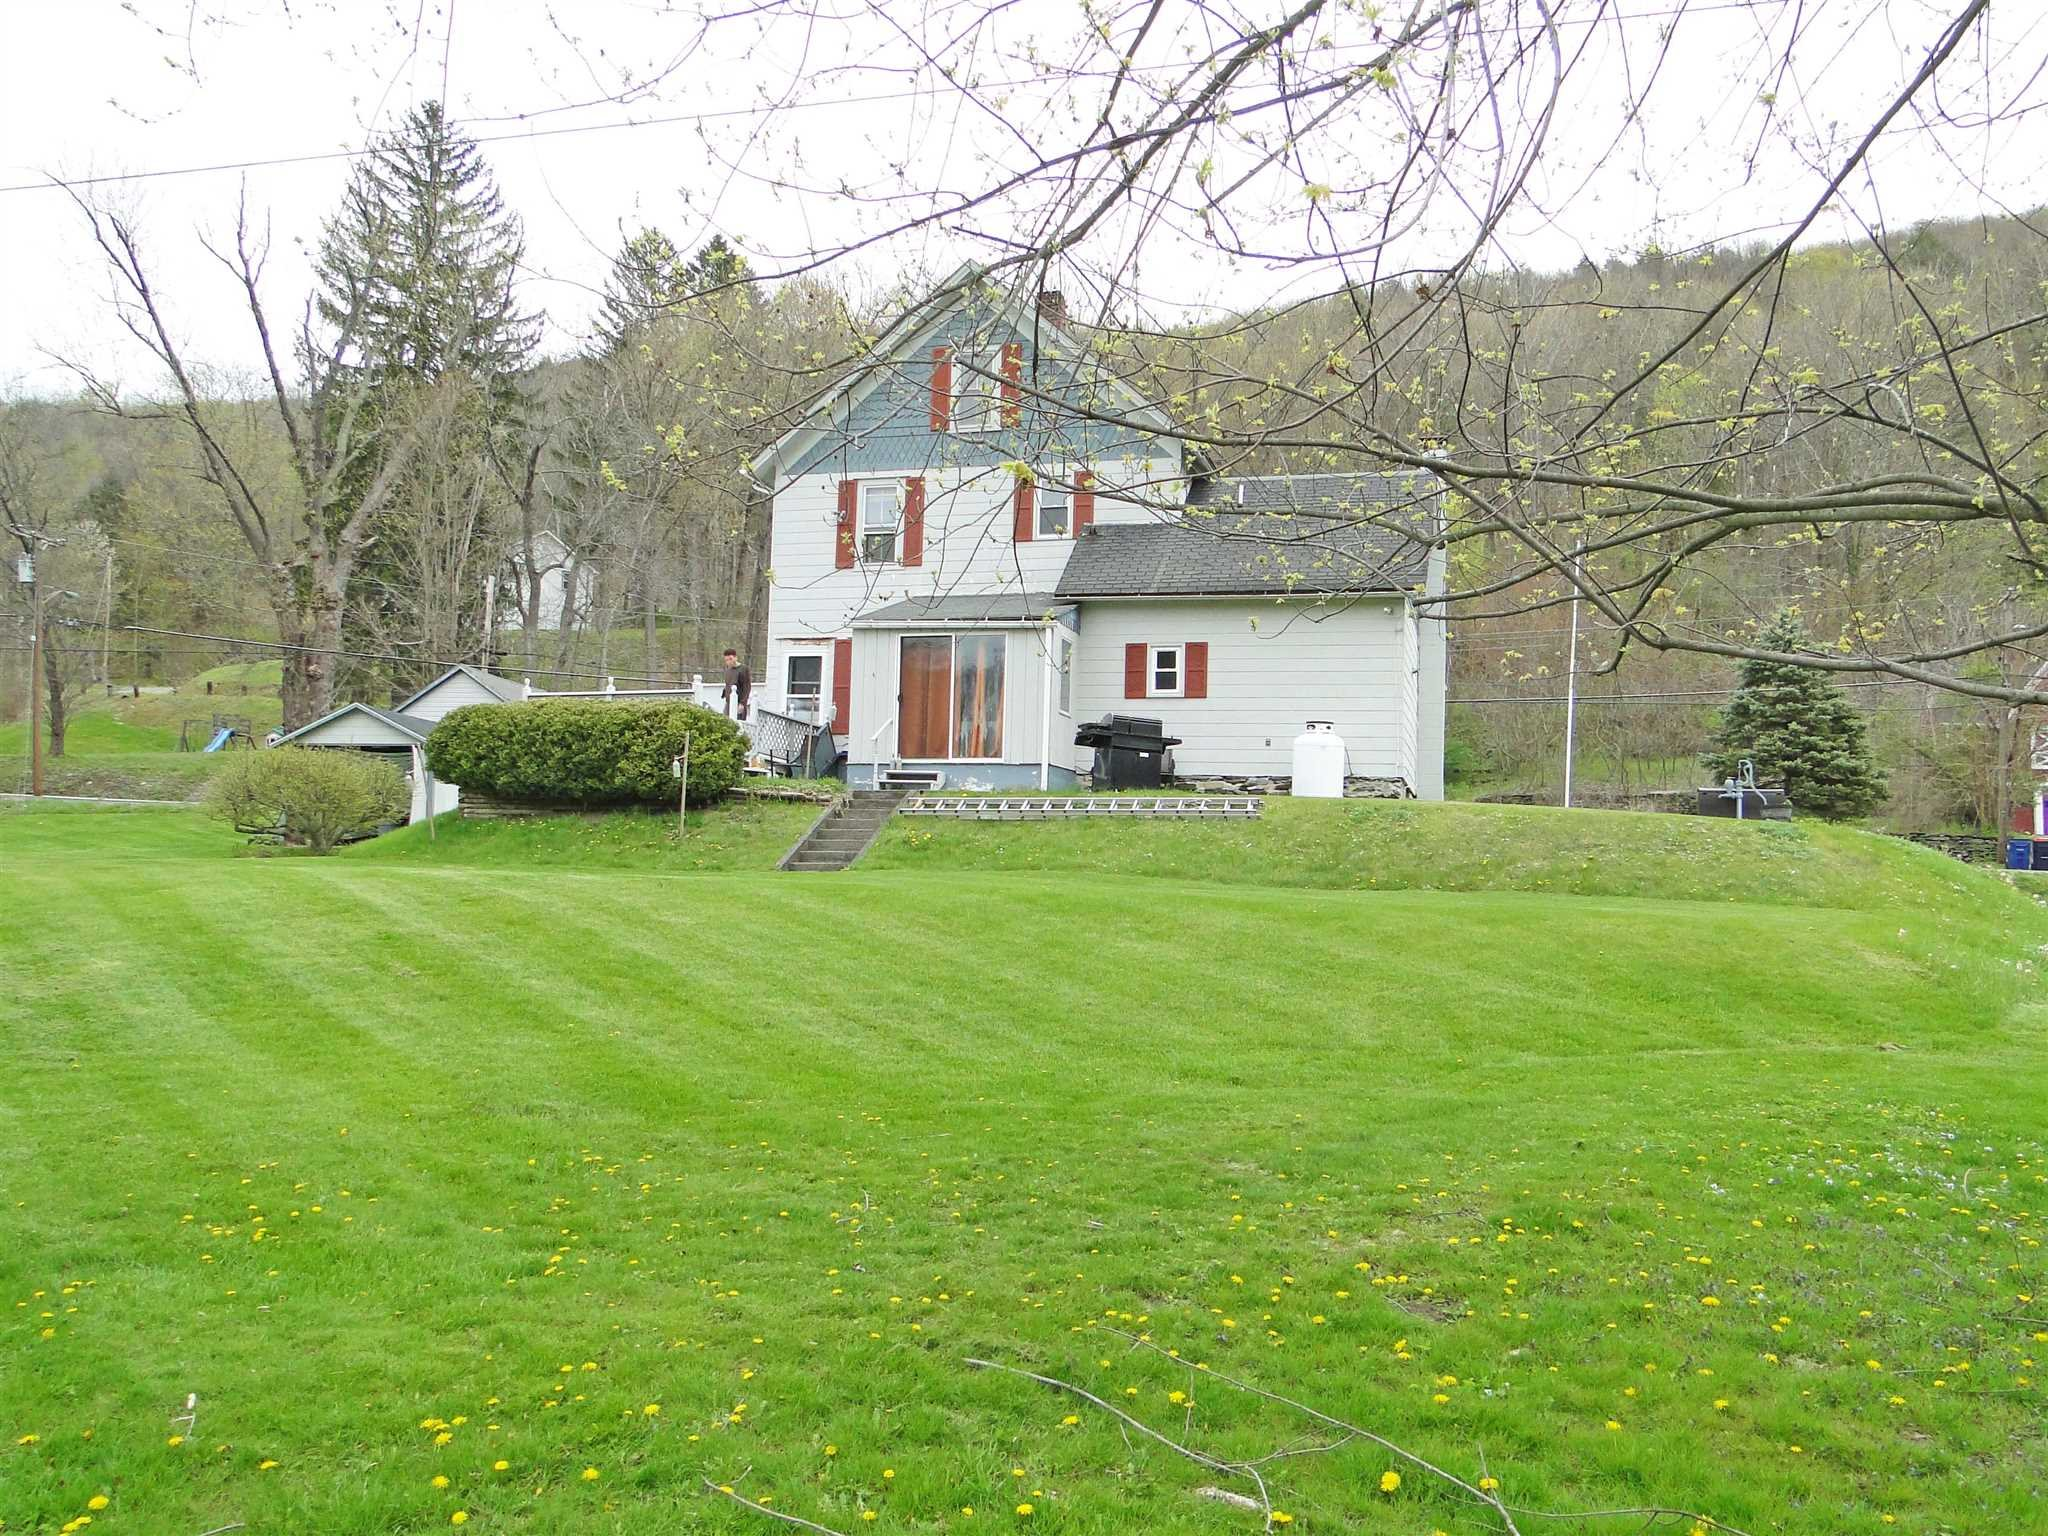 Additional photo for property listing at 303 OLD ROUTE 22 303 OLD ROUTE 22 Amenia, New York 12592 United States